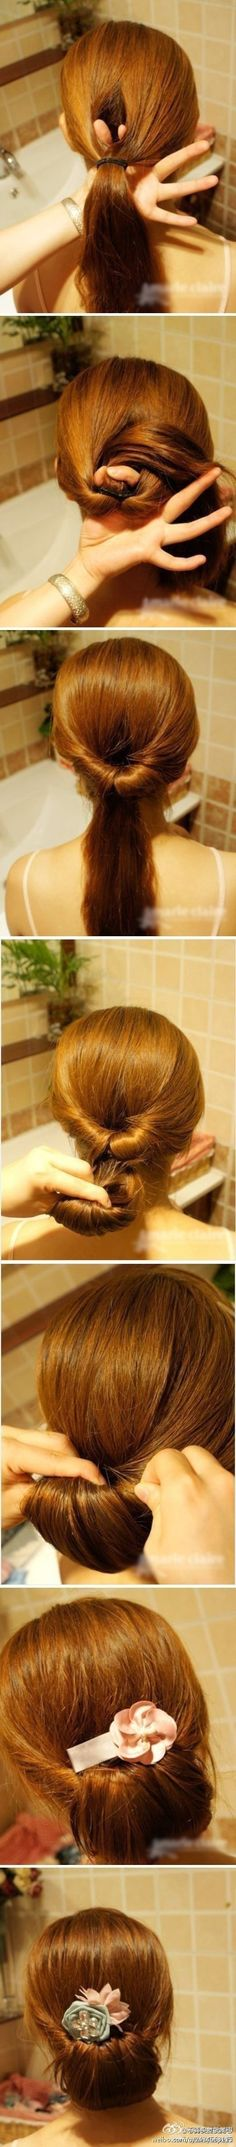 Easy hair up-do for straight long hair. Looks cute! Even I can do this.